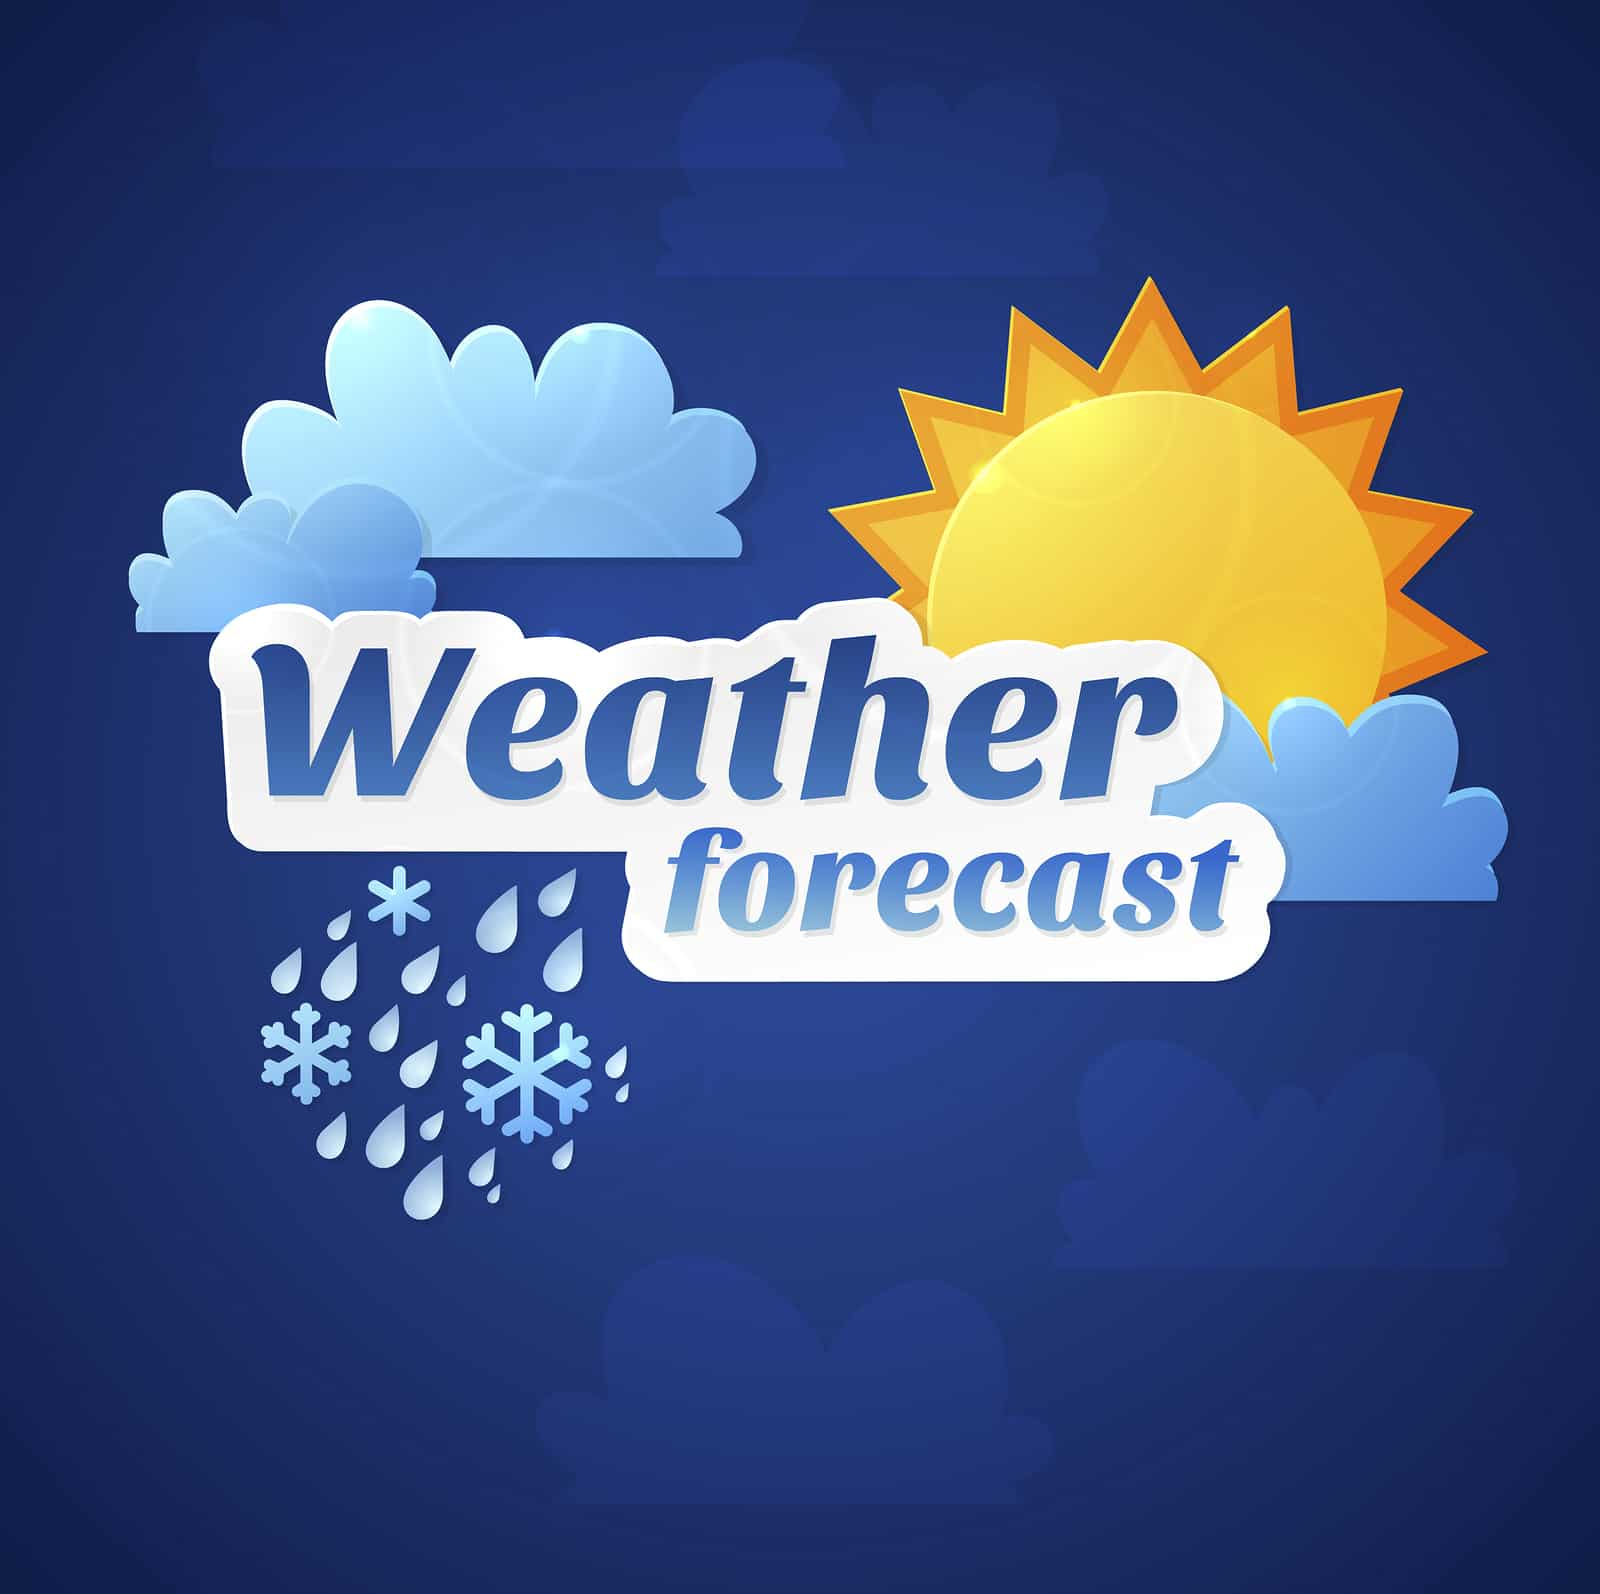 St Louis Weather Conditions & Forecast, February 23, 2018